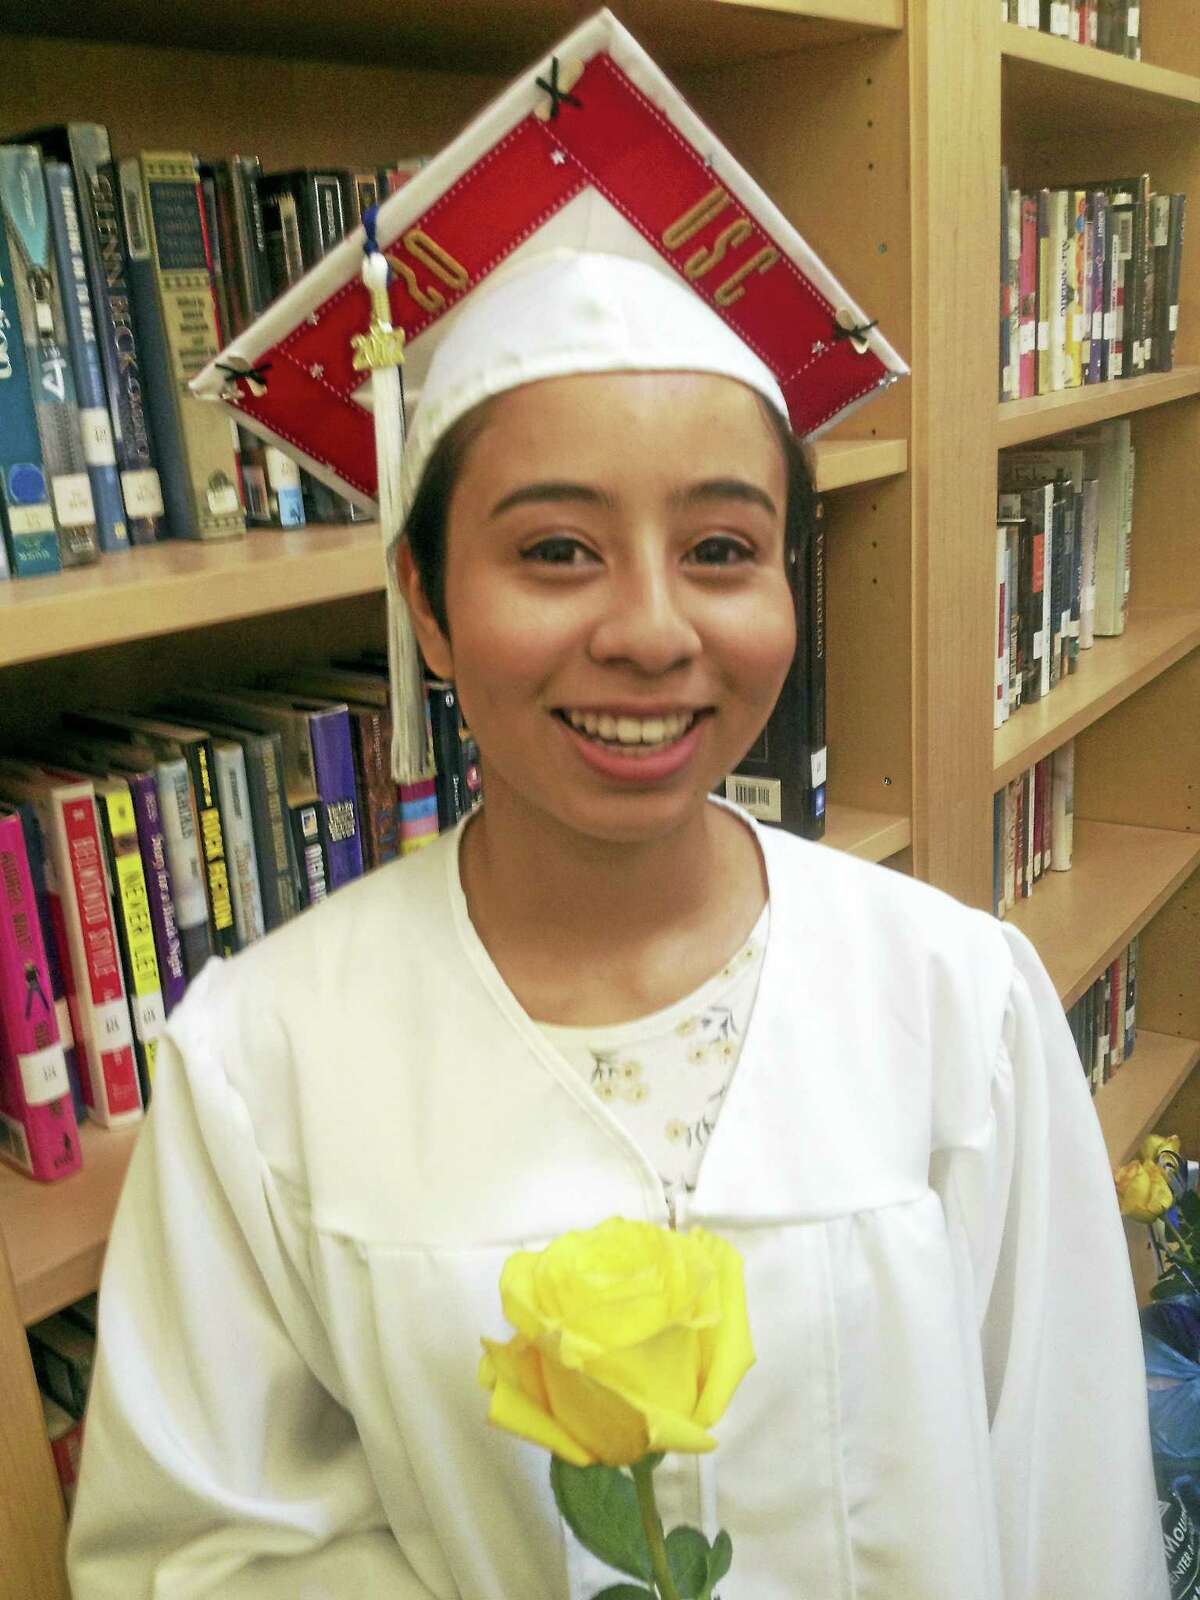 East Hampton High School graduate Signe Lee completed obtained her diploma in three years and spent her freshman year at the University of Southern California. She returned to East Hampton to graduate with her class Monday night.